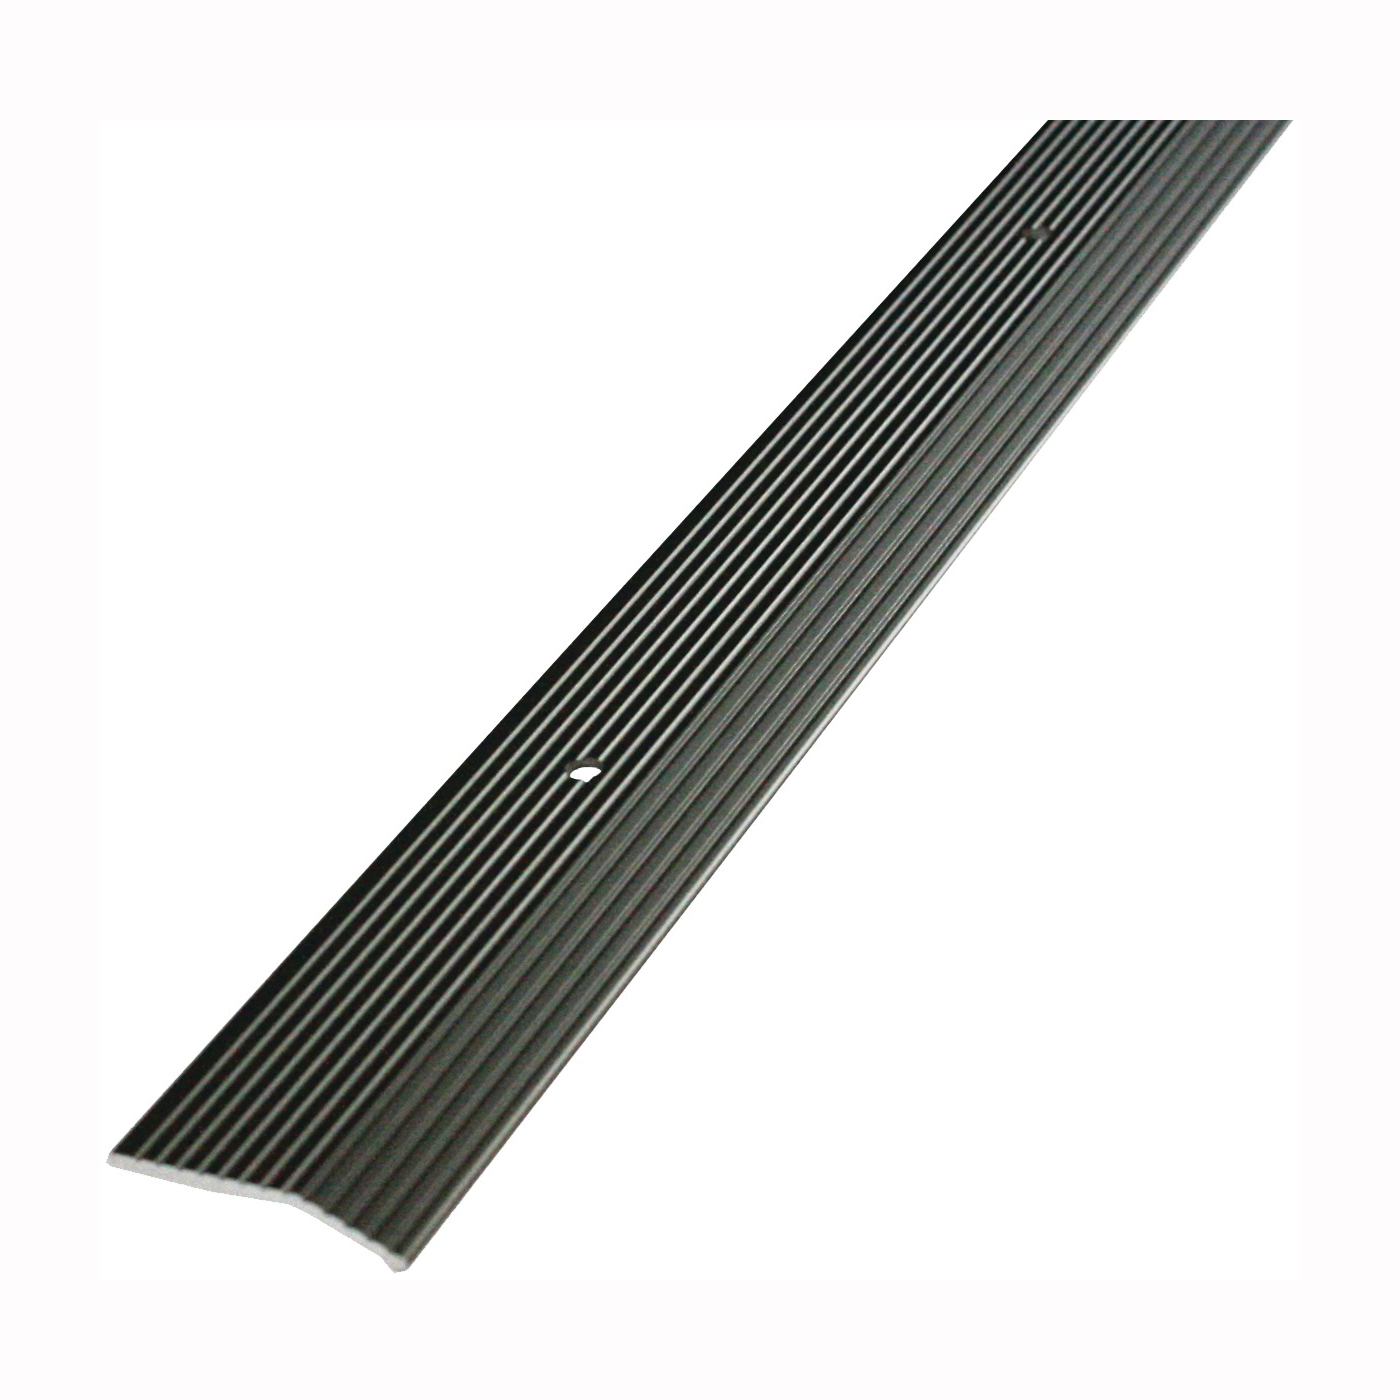 Picture of M-D 43858 Carpet Trim, 36 in L, 2 in W, Fluted Surface, Aluminum, Pewter